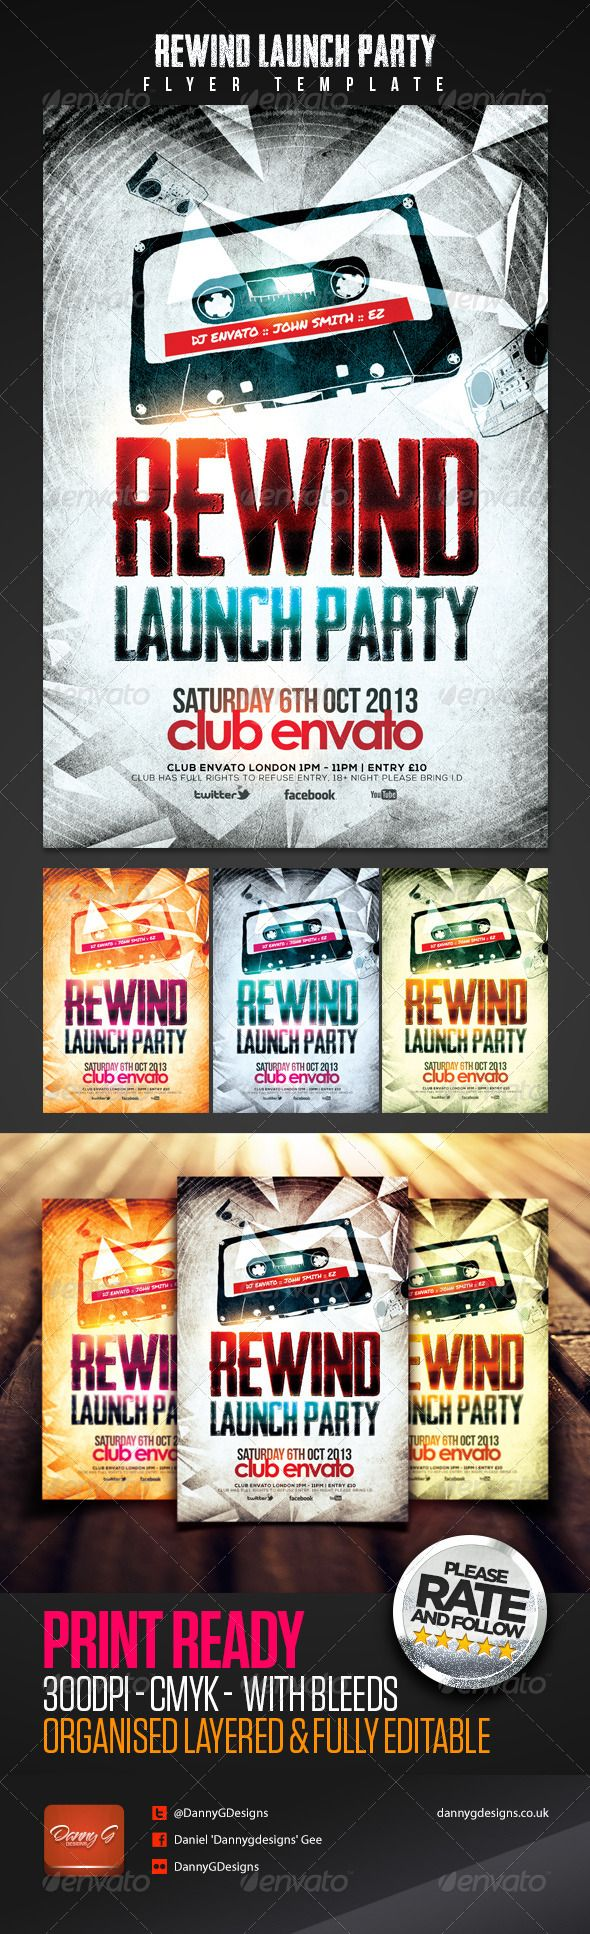 Rewind Launch Party Flyer Template | Flyer size, Party flyer and ...